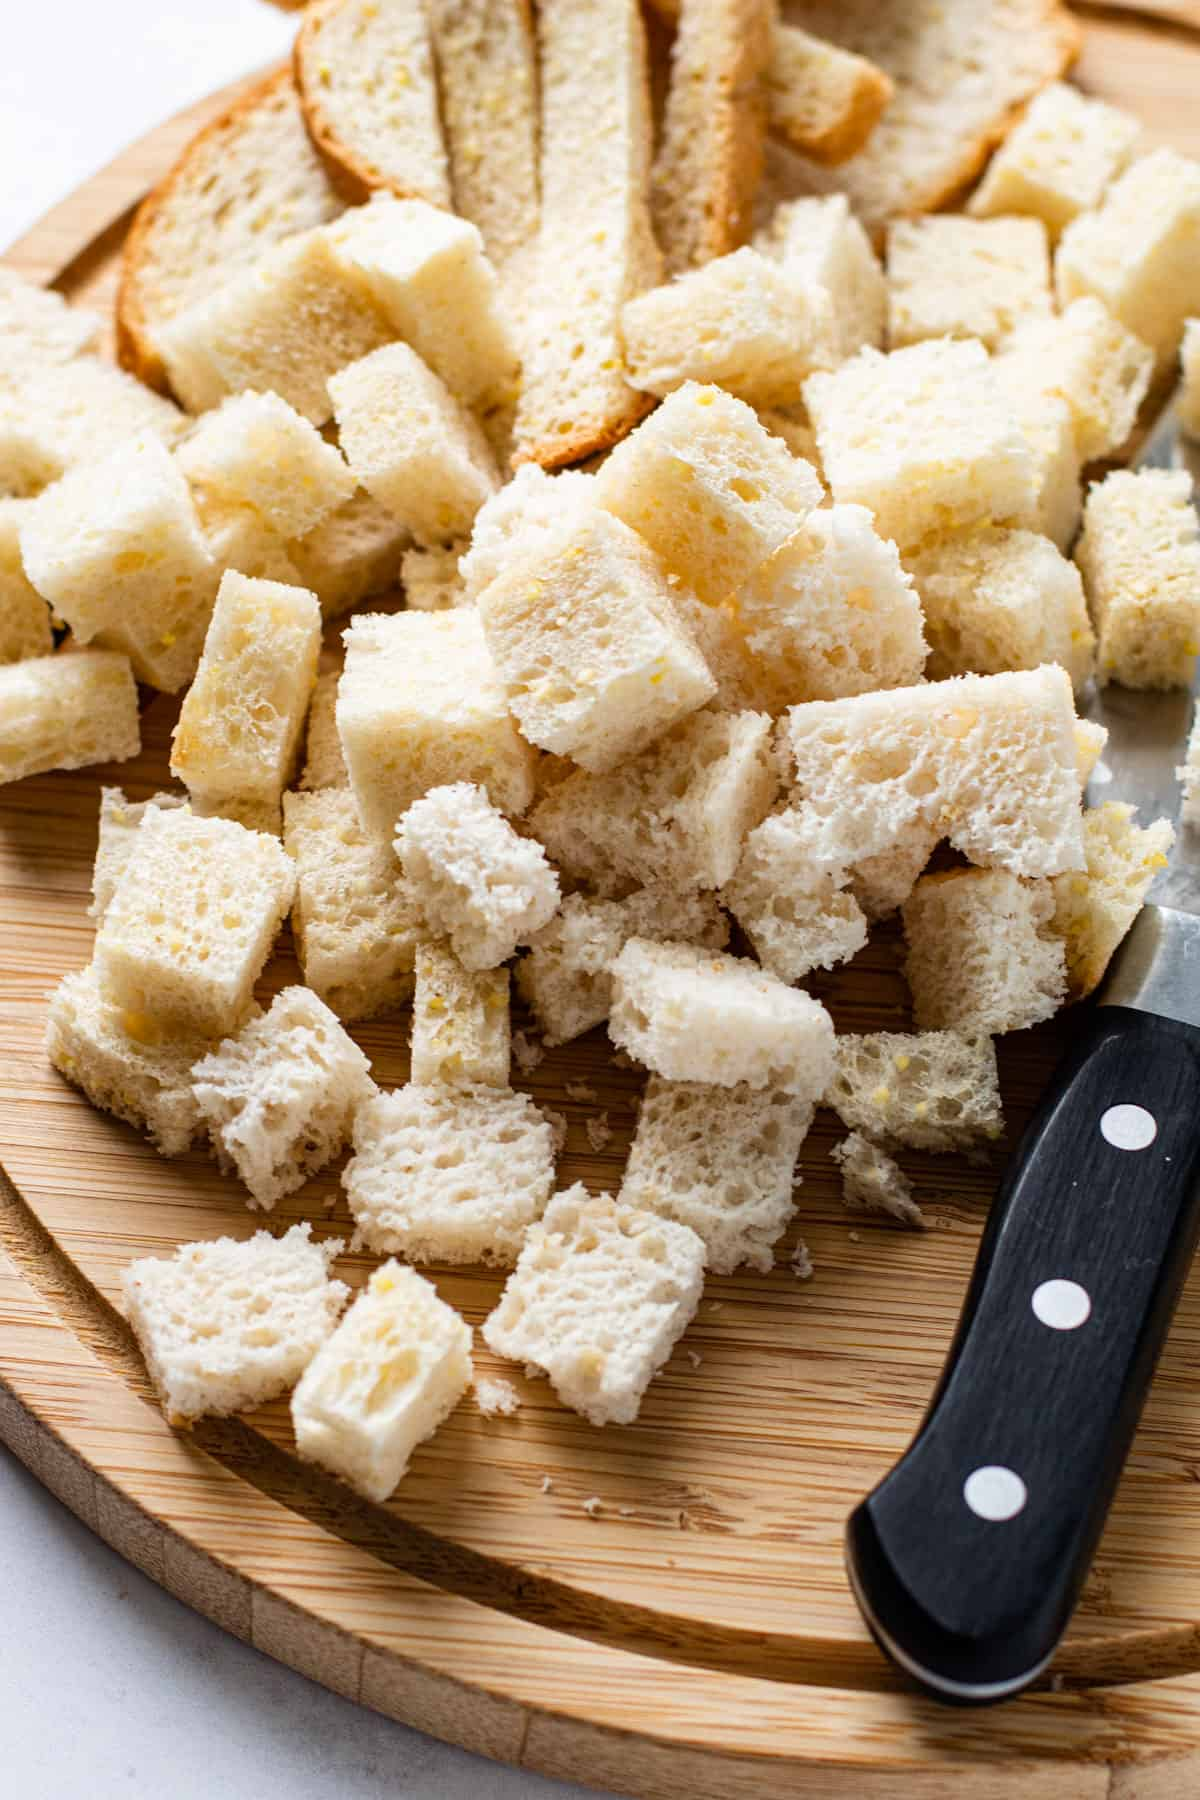 Bread cubes for croutons.